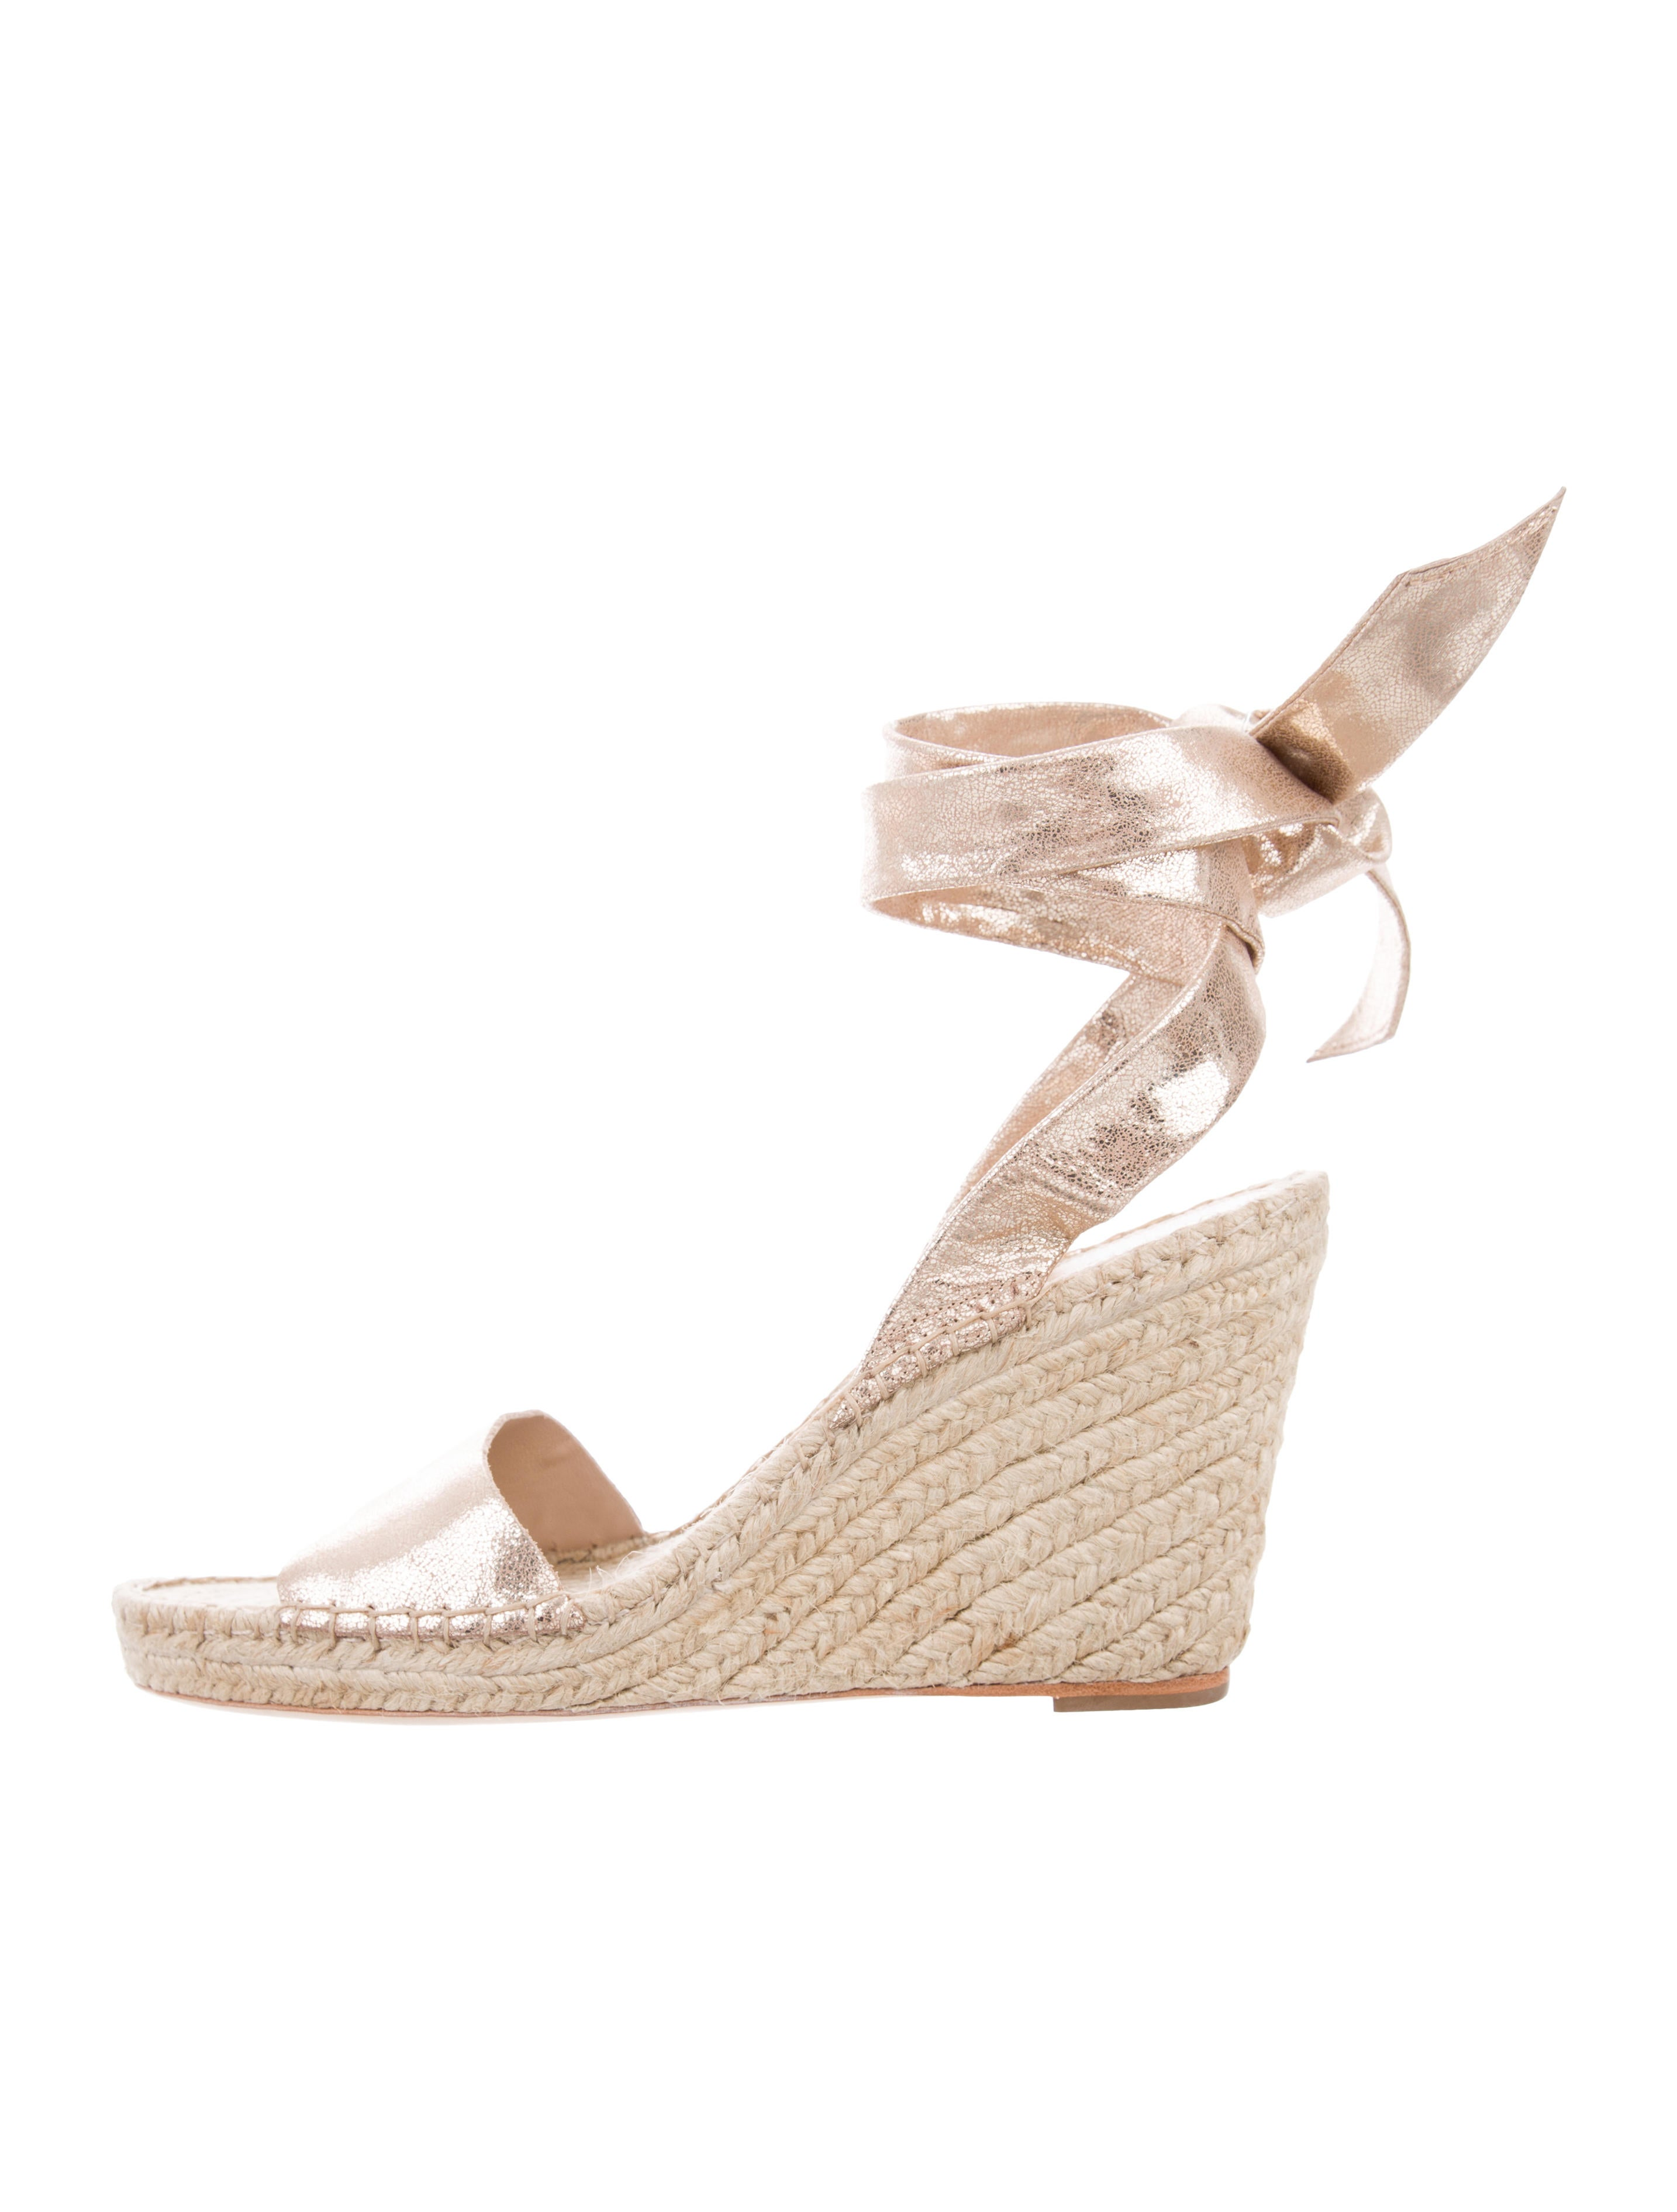 2014 new cheap price Loeffler Randall Harper Espadrille Wedges w/ Tags pay with visa cheap price buy cheap supply R95WHOZgnH